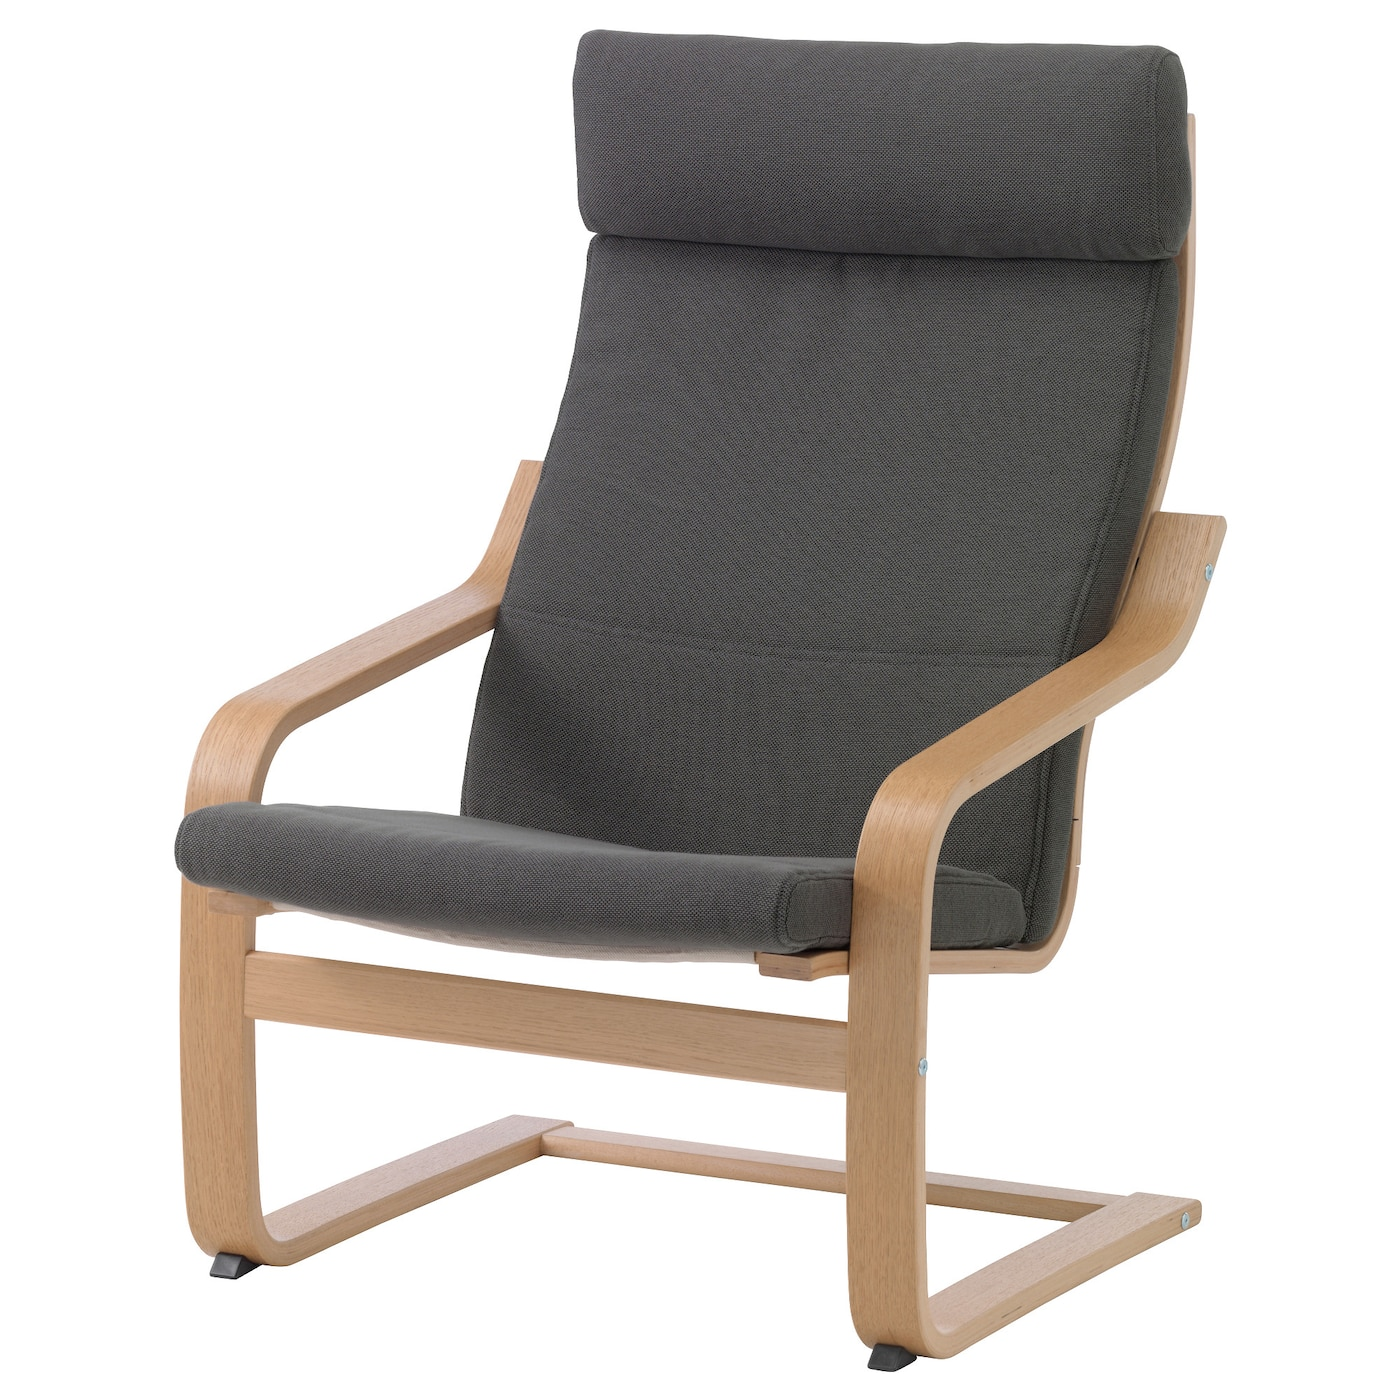 IKEA POÄNG armchair Layer-glued bent beech frame gives comfortable resilience.